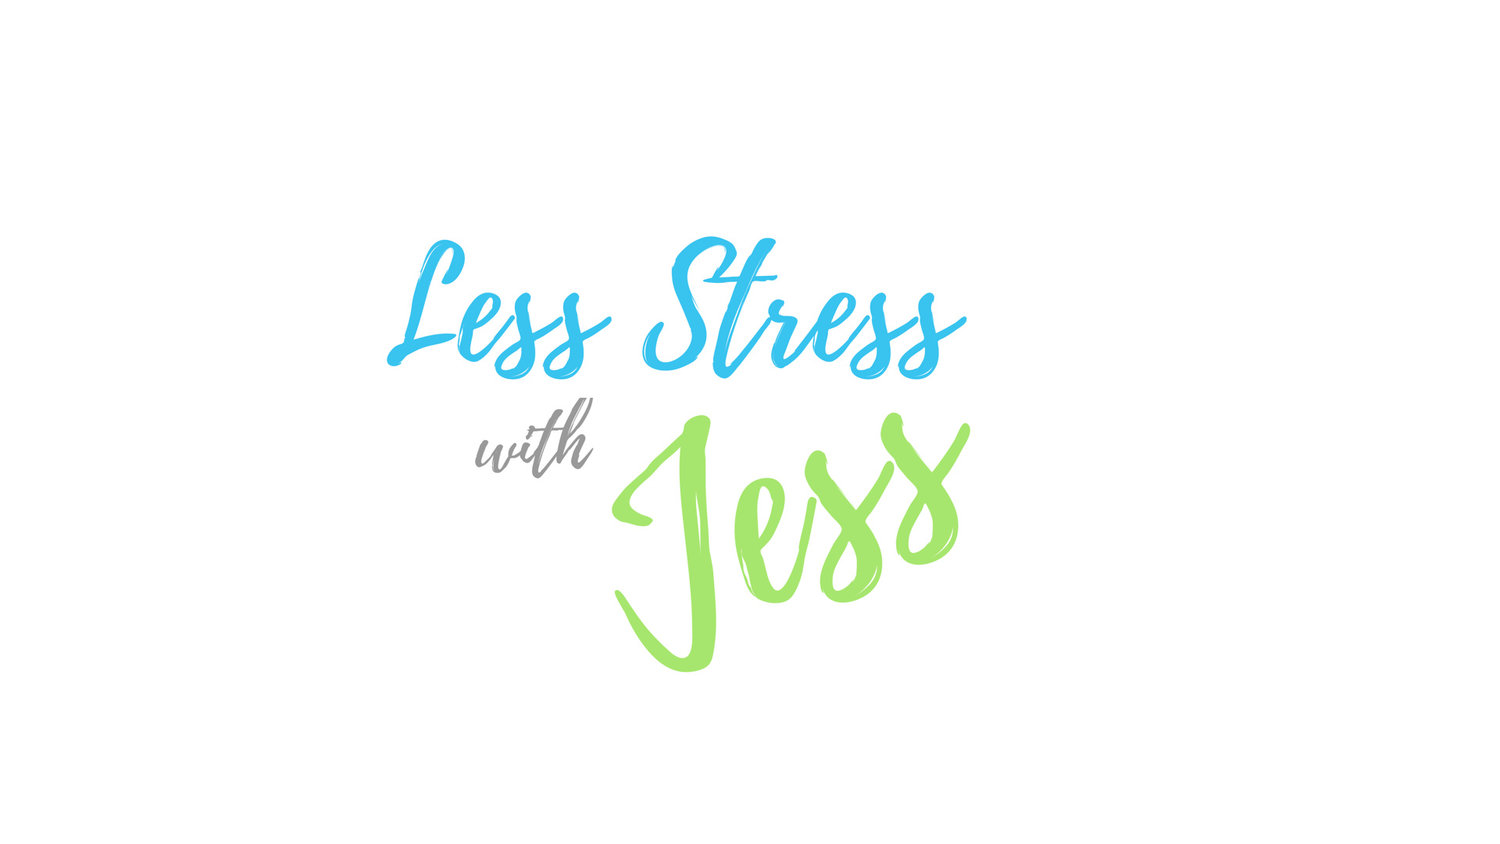 Less Stress with Jess